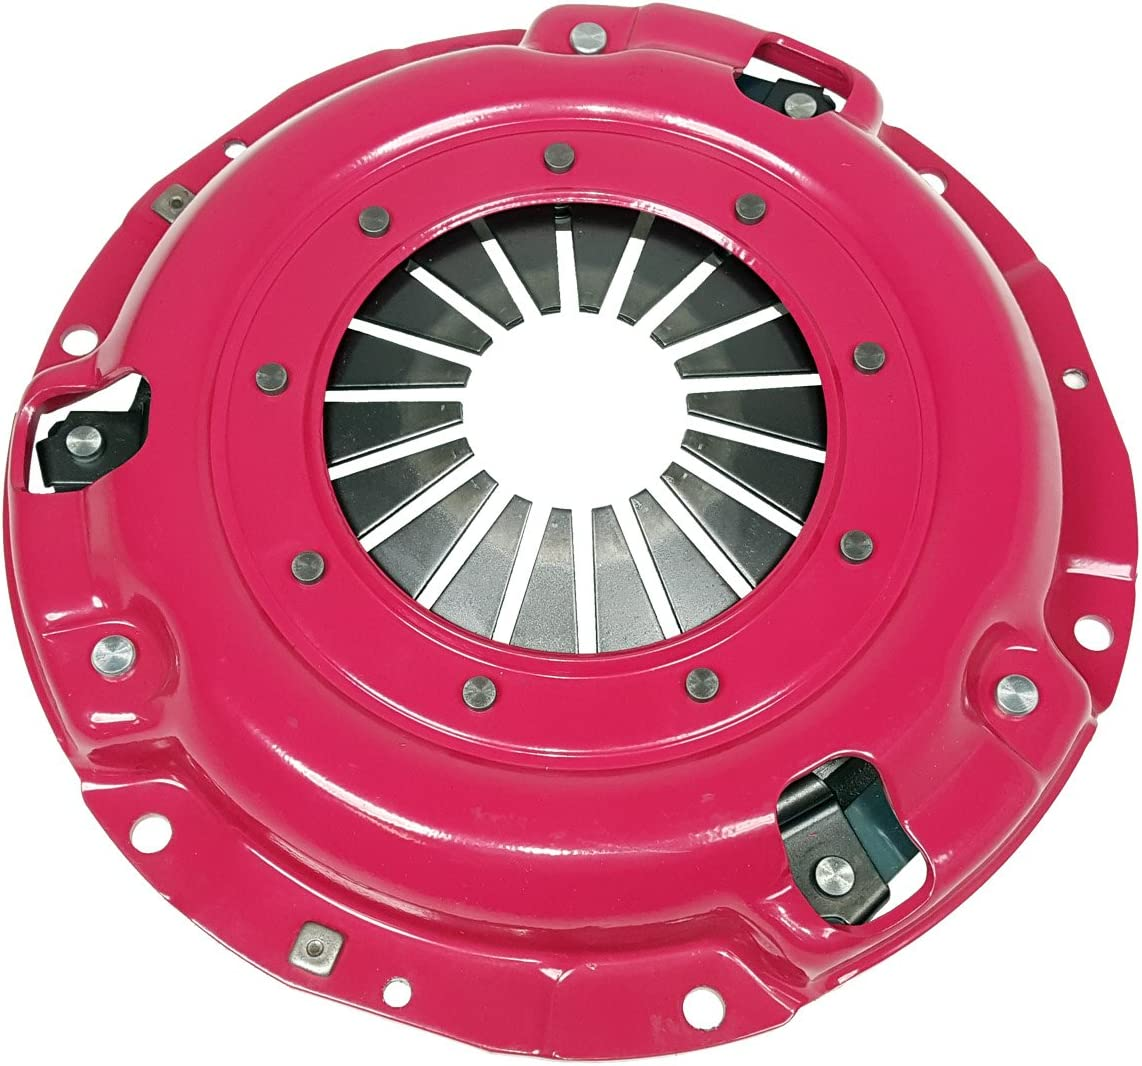 Bean VDC 1996-2012 2.0L H4 2.5L H4 3.0L H6 Clutch Kit And Sleeve Compatible With Forester Impreza Legacy X Base Limited Premium Sport Touring 2.5i Outback L H6 L.L Clutch Disc Stage 1; 15-004R